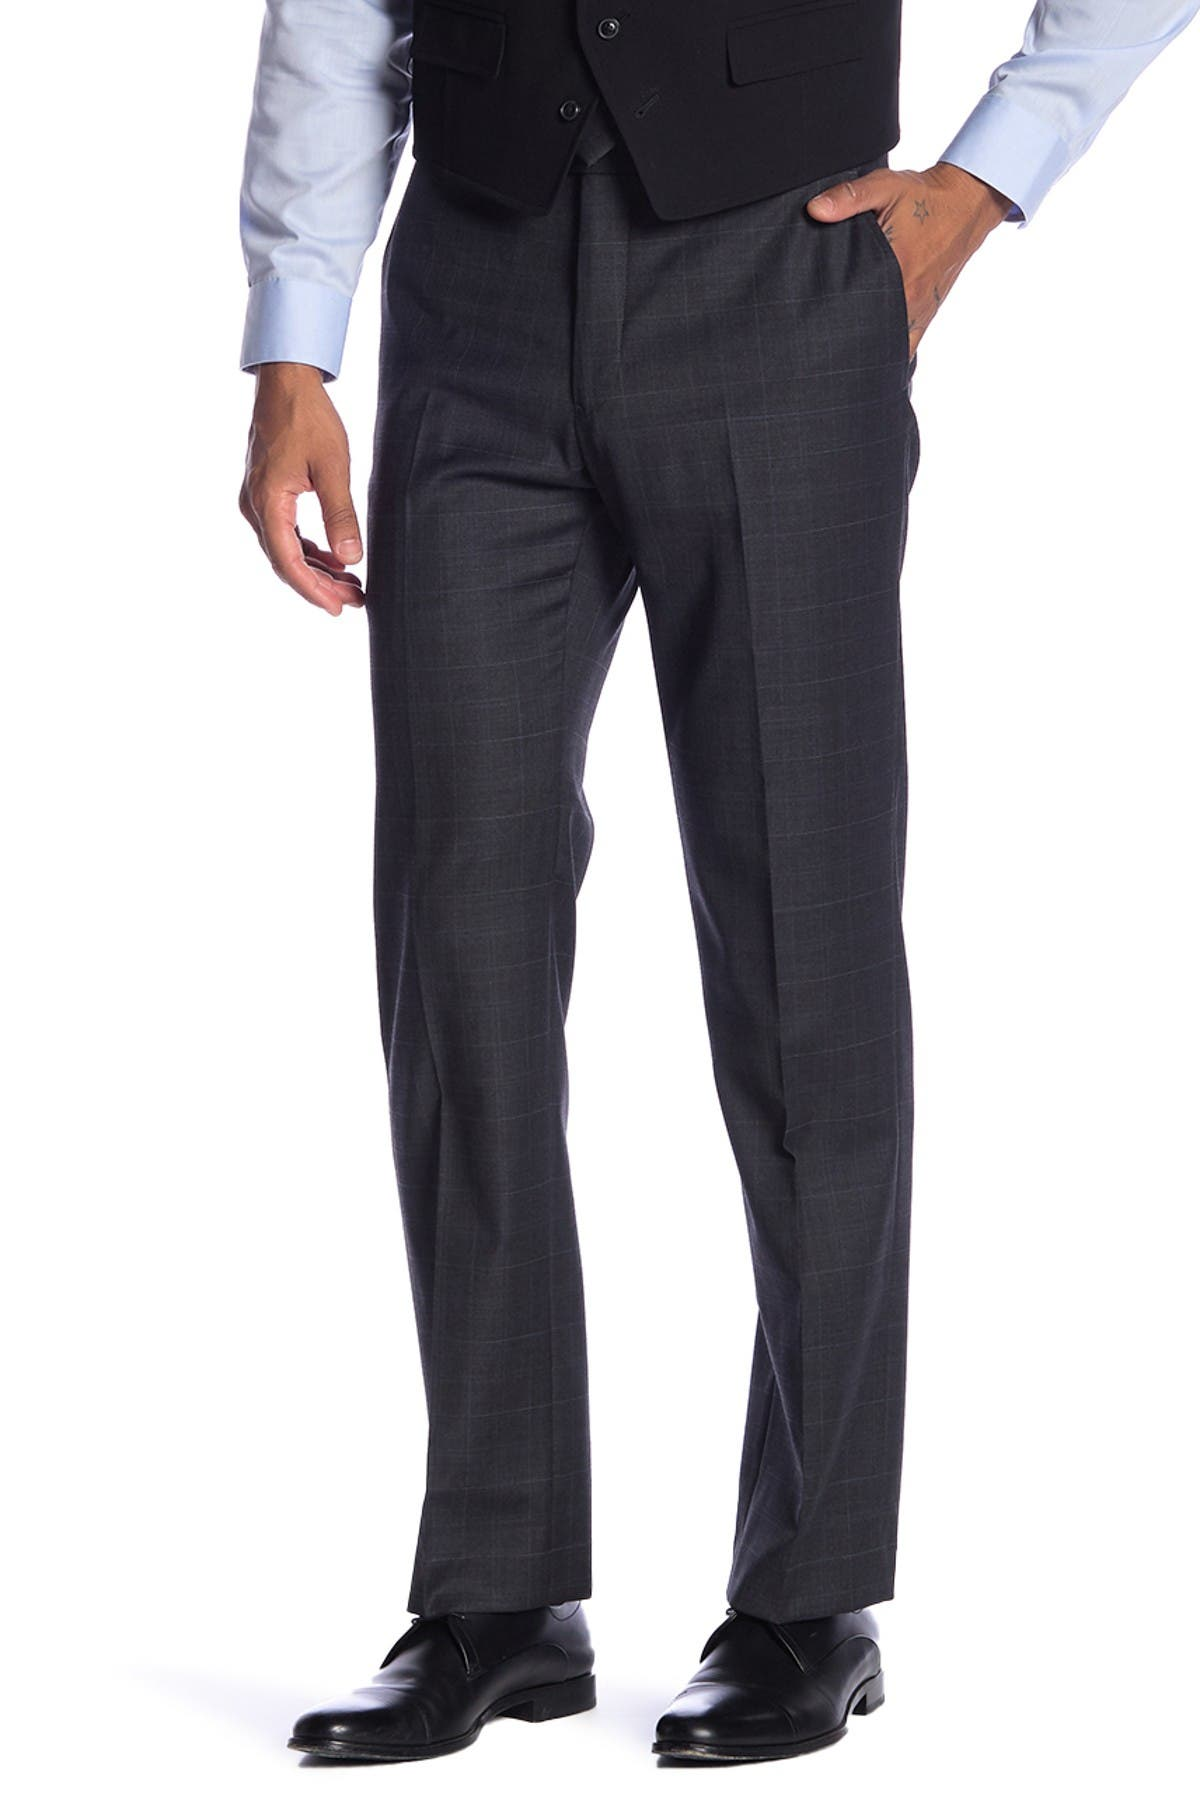 "Image of Tommy Hilfiger Tyler Plaid Print Modern Fit Stretch Suit Separates Pants - 30-34"" Inseam"